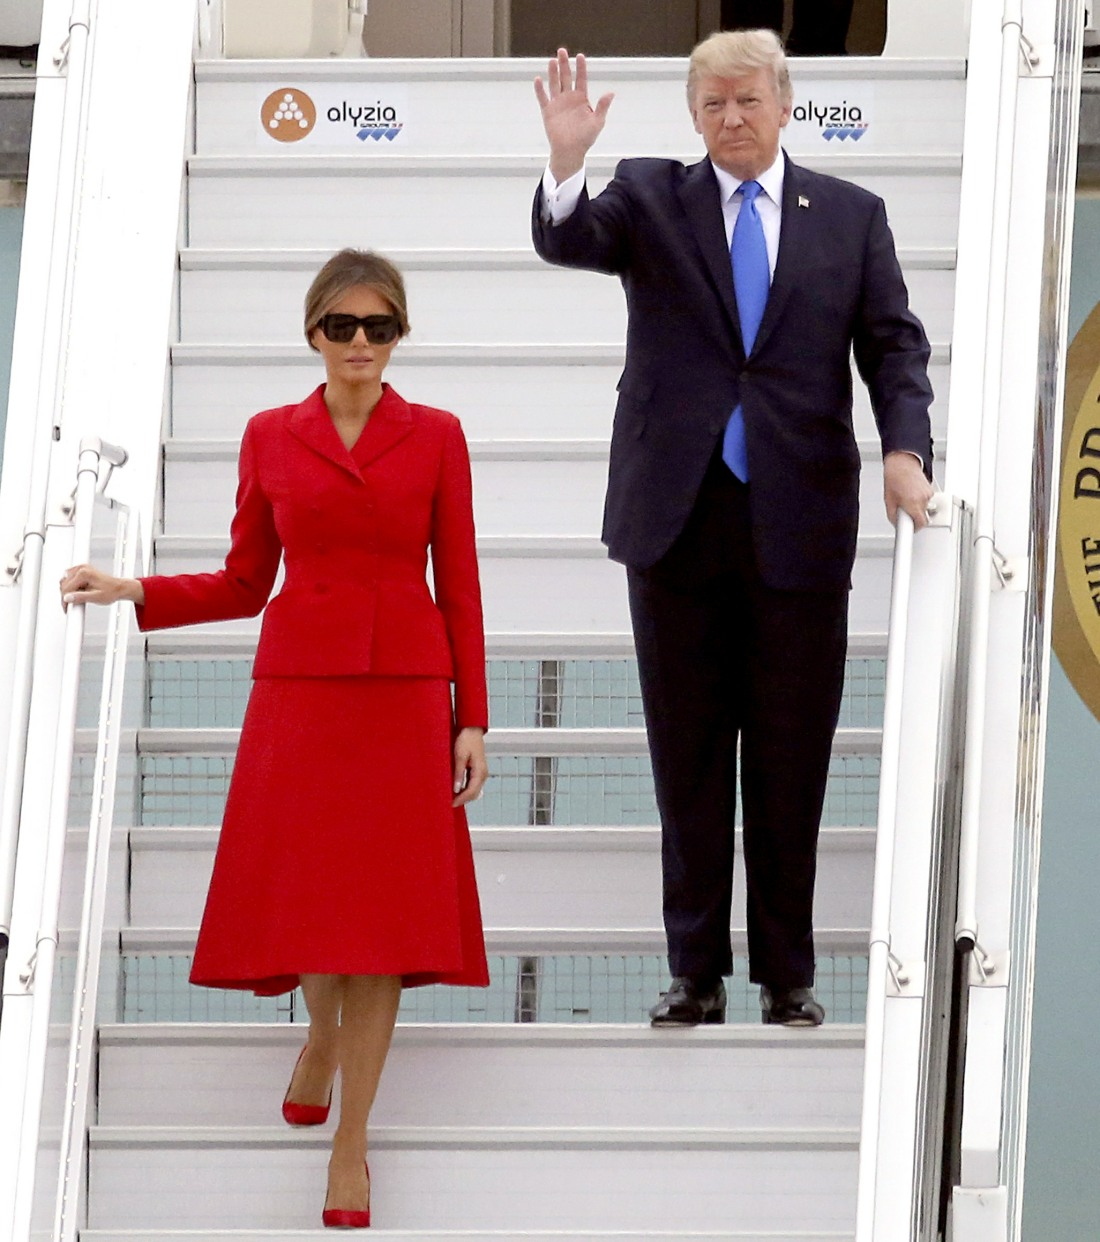 US President Donald Trump and his wife Melania Trump arrive at Paris' Orly Airport